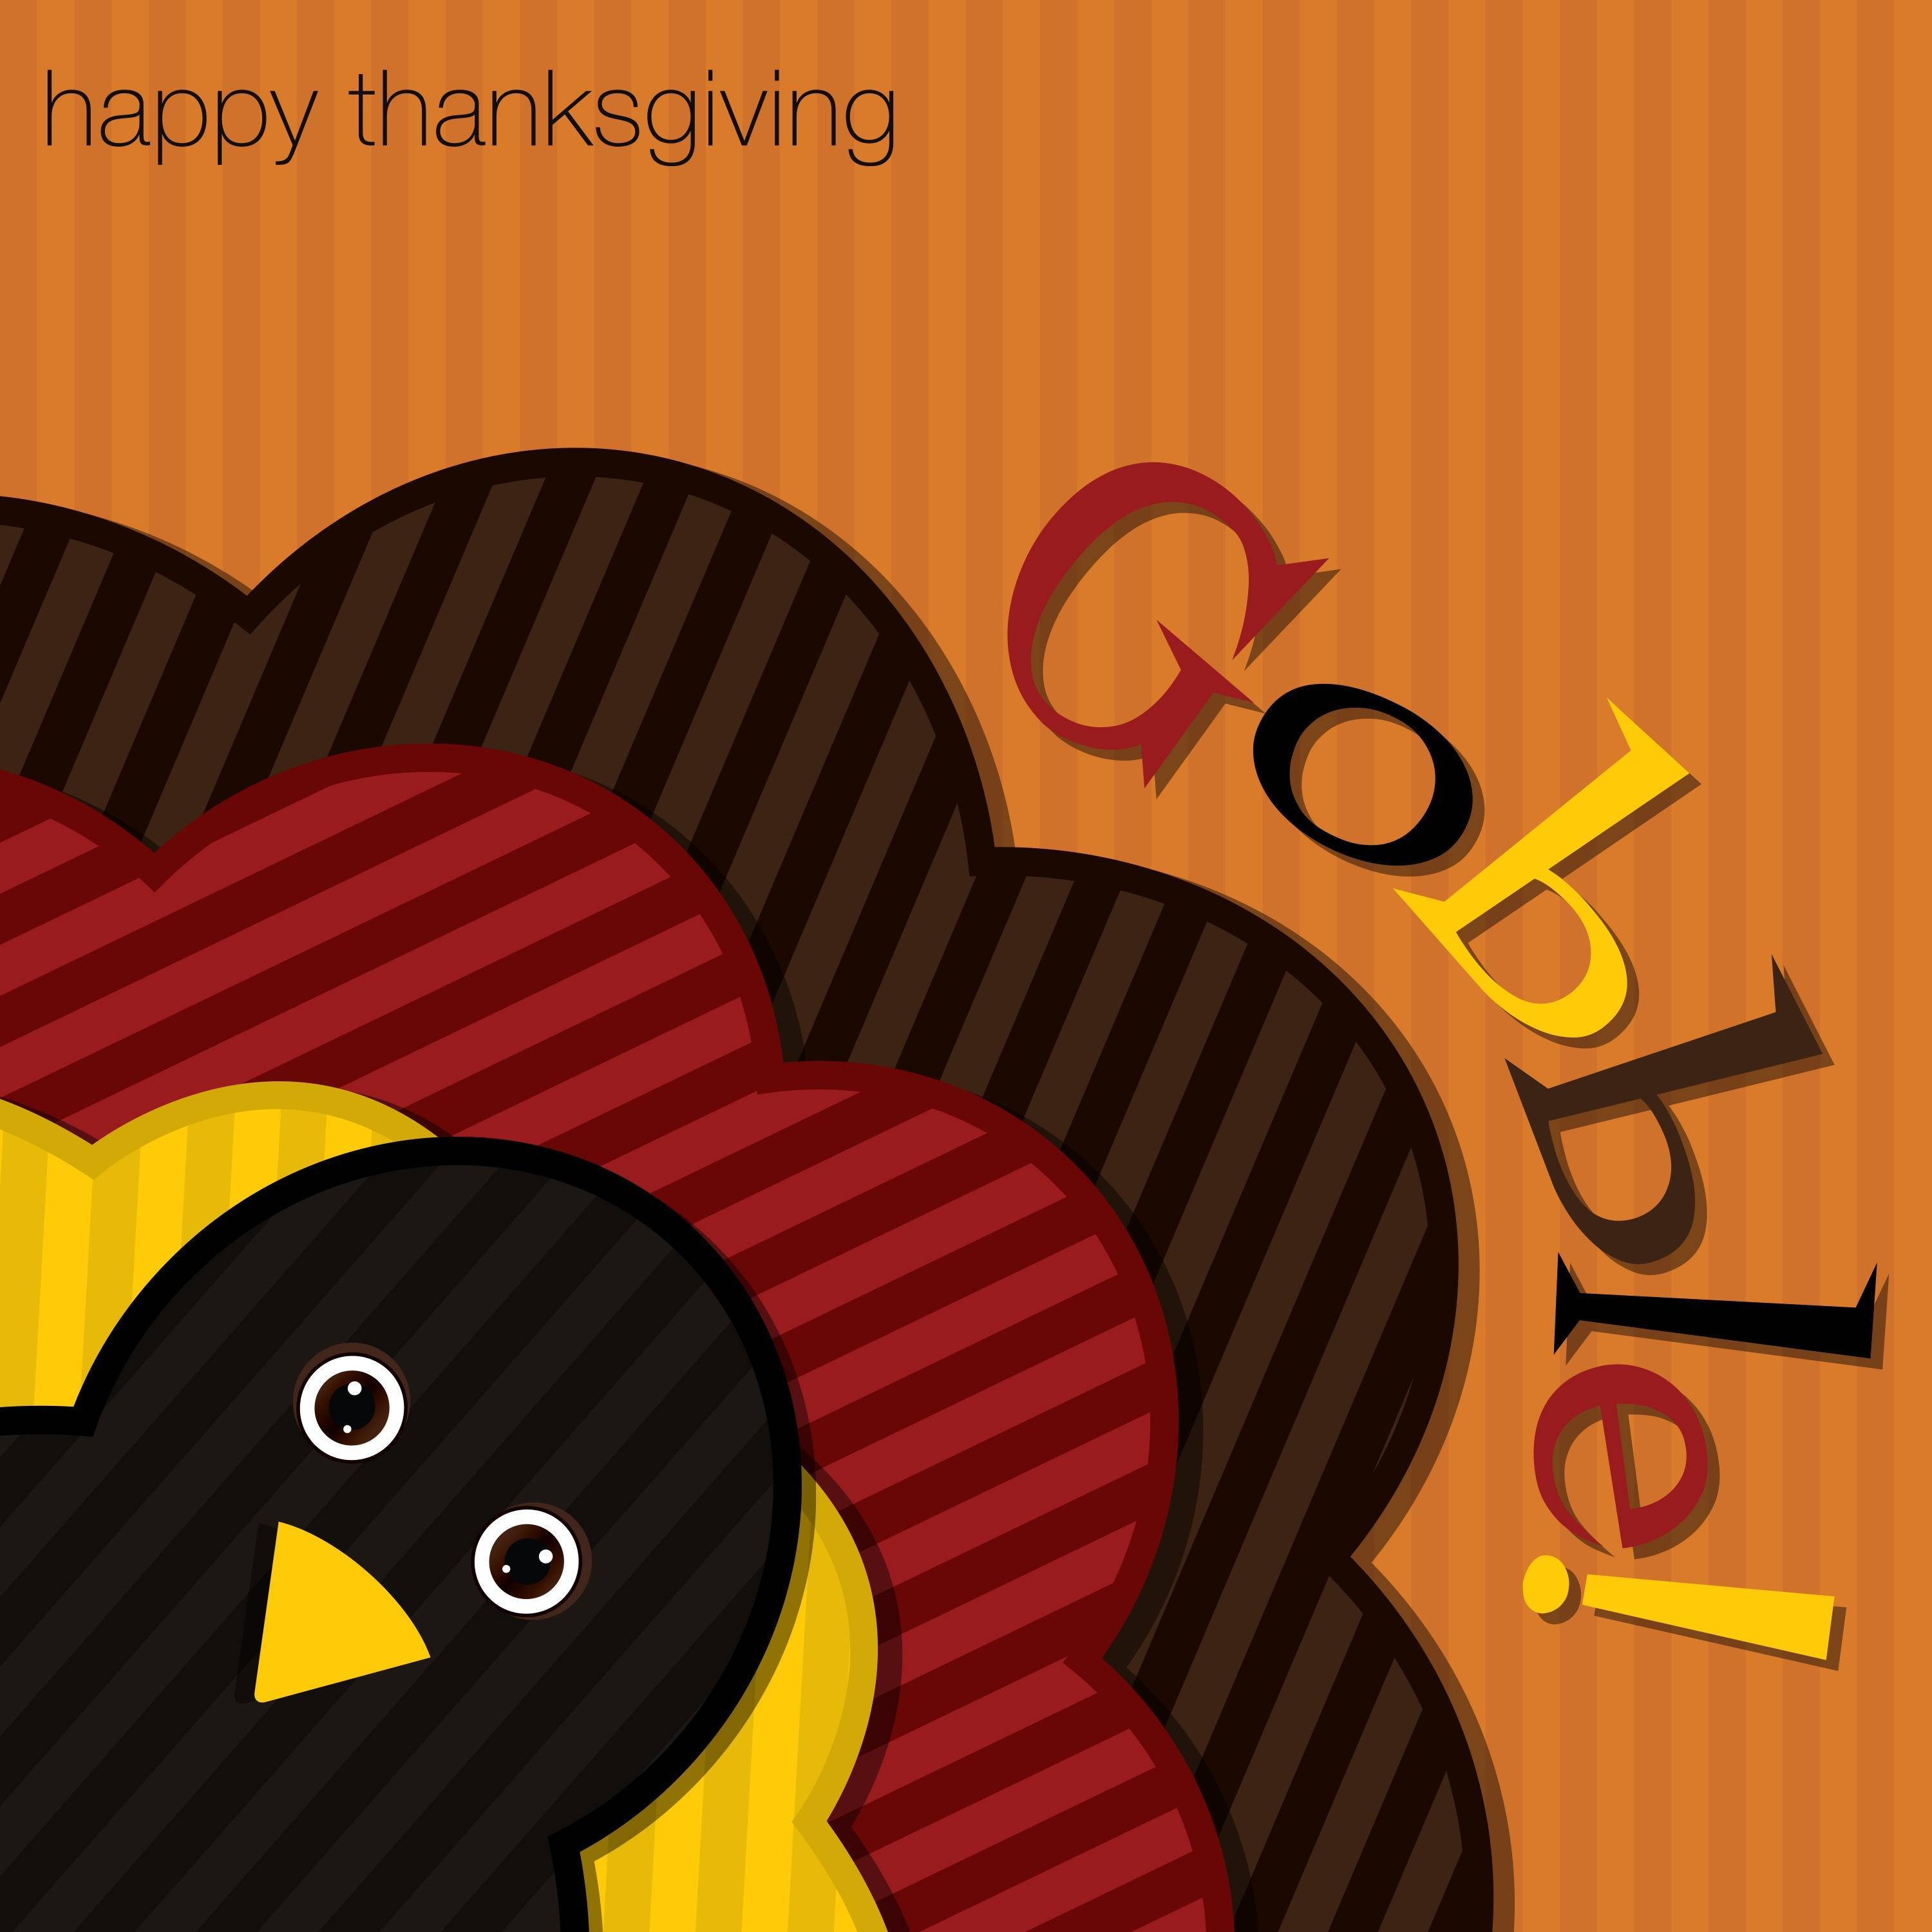 fbe36aeaf16dc1cd6cdf_Gobble__Thanksgiving__graphic.jpg